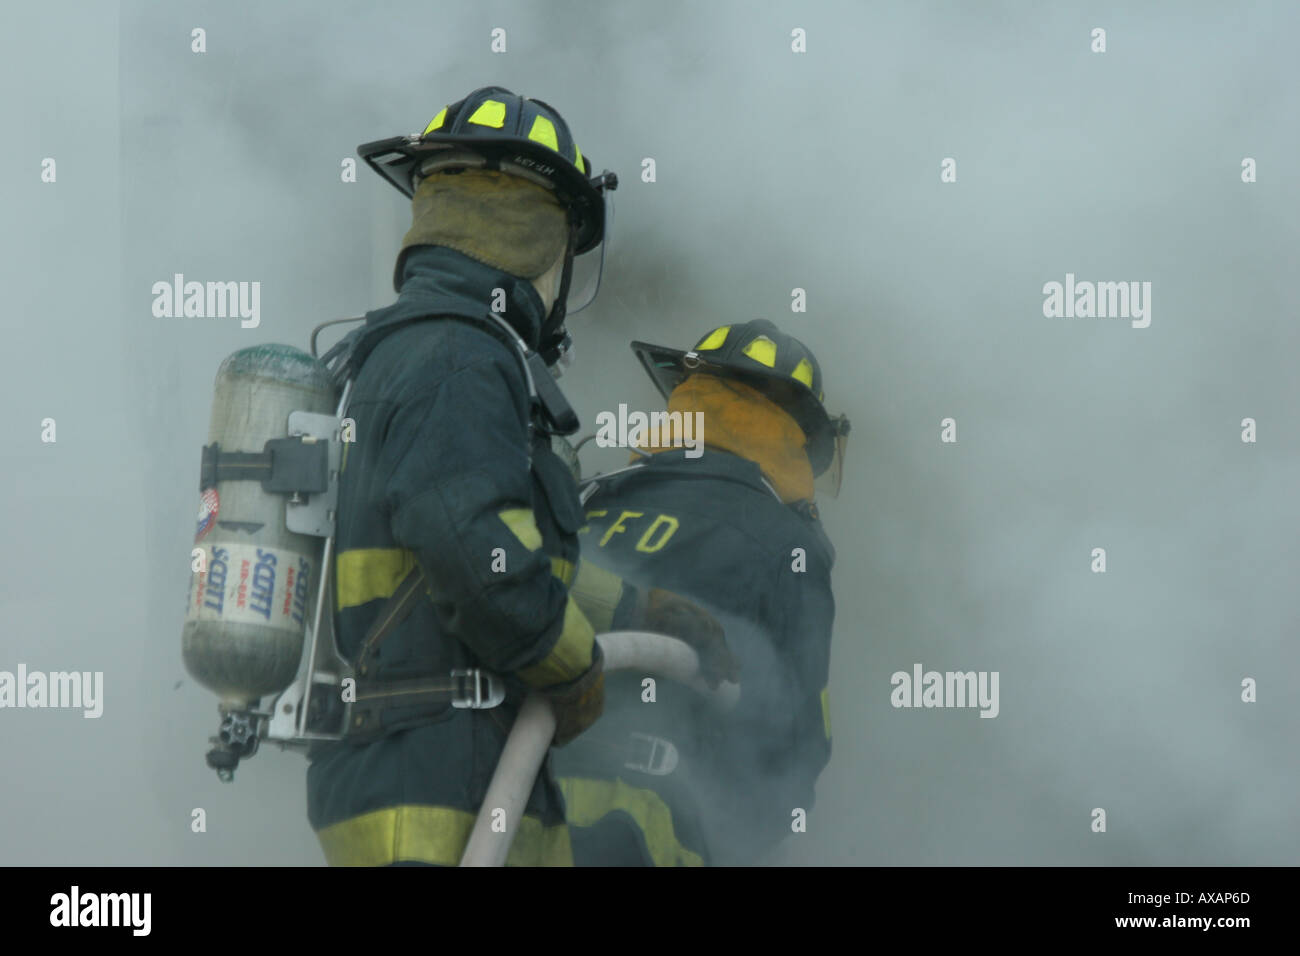 Fire fighters putting out fire in container Stock Photo